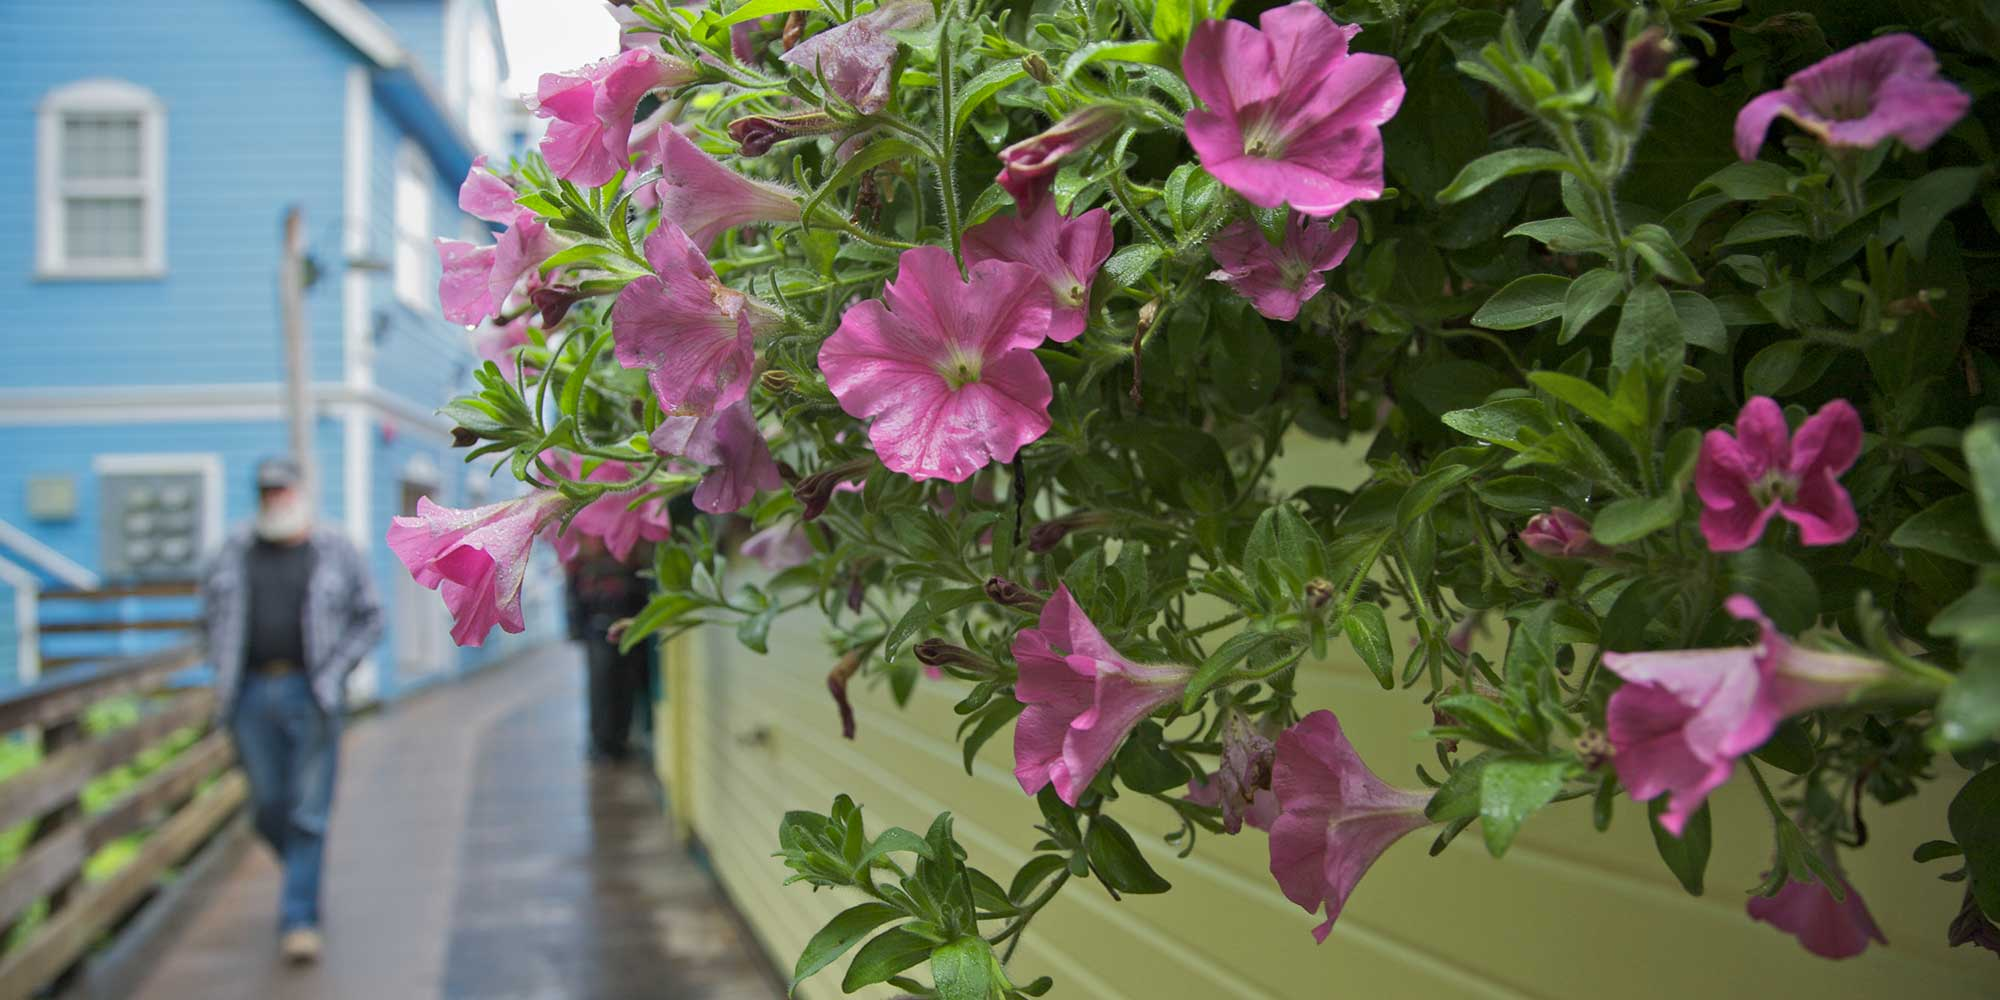 flowers hanging over a sidewalk